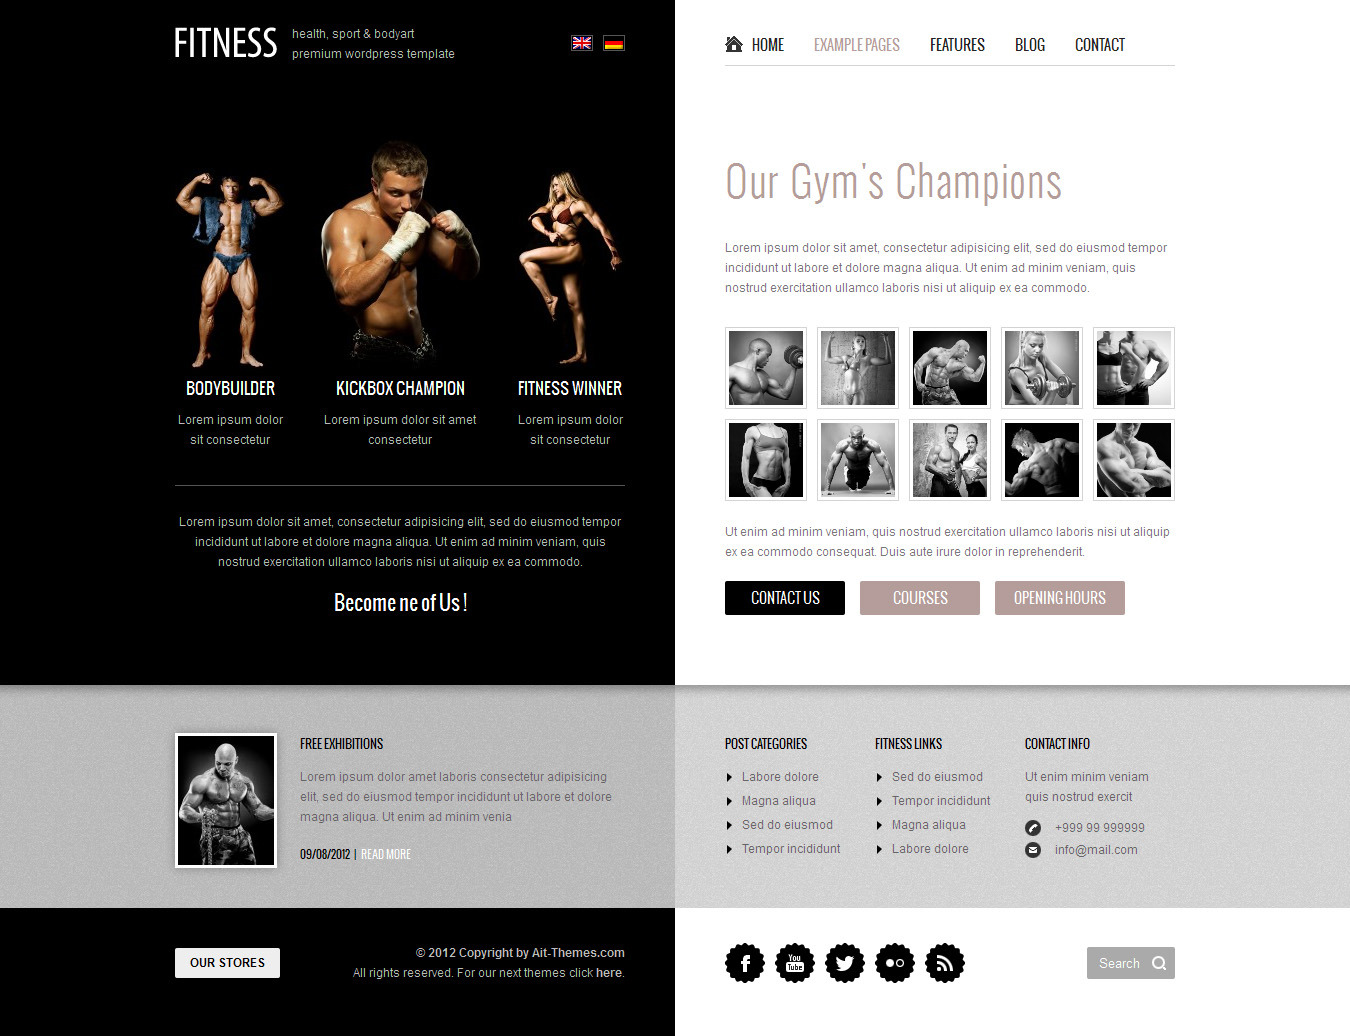 Fitness: Unique design meets Wordpress